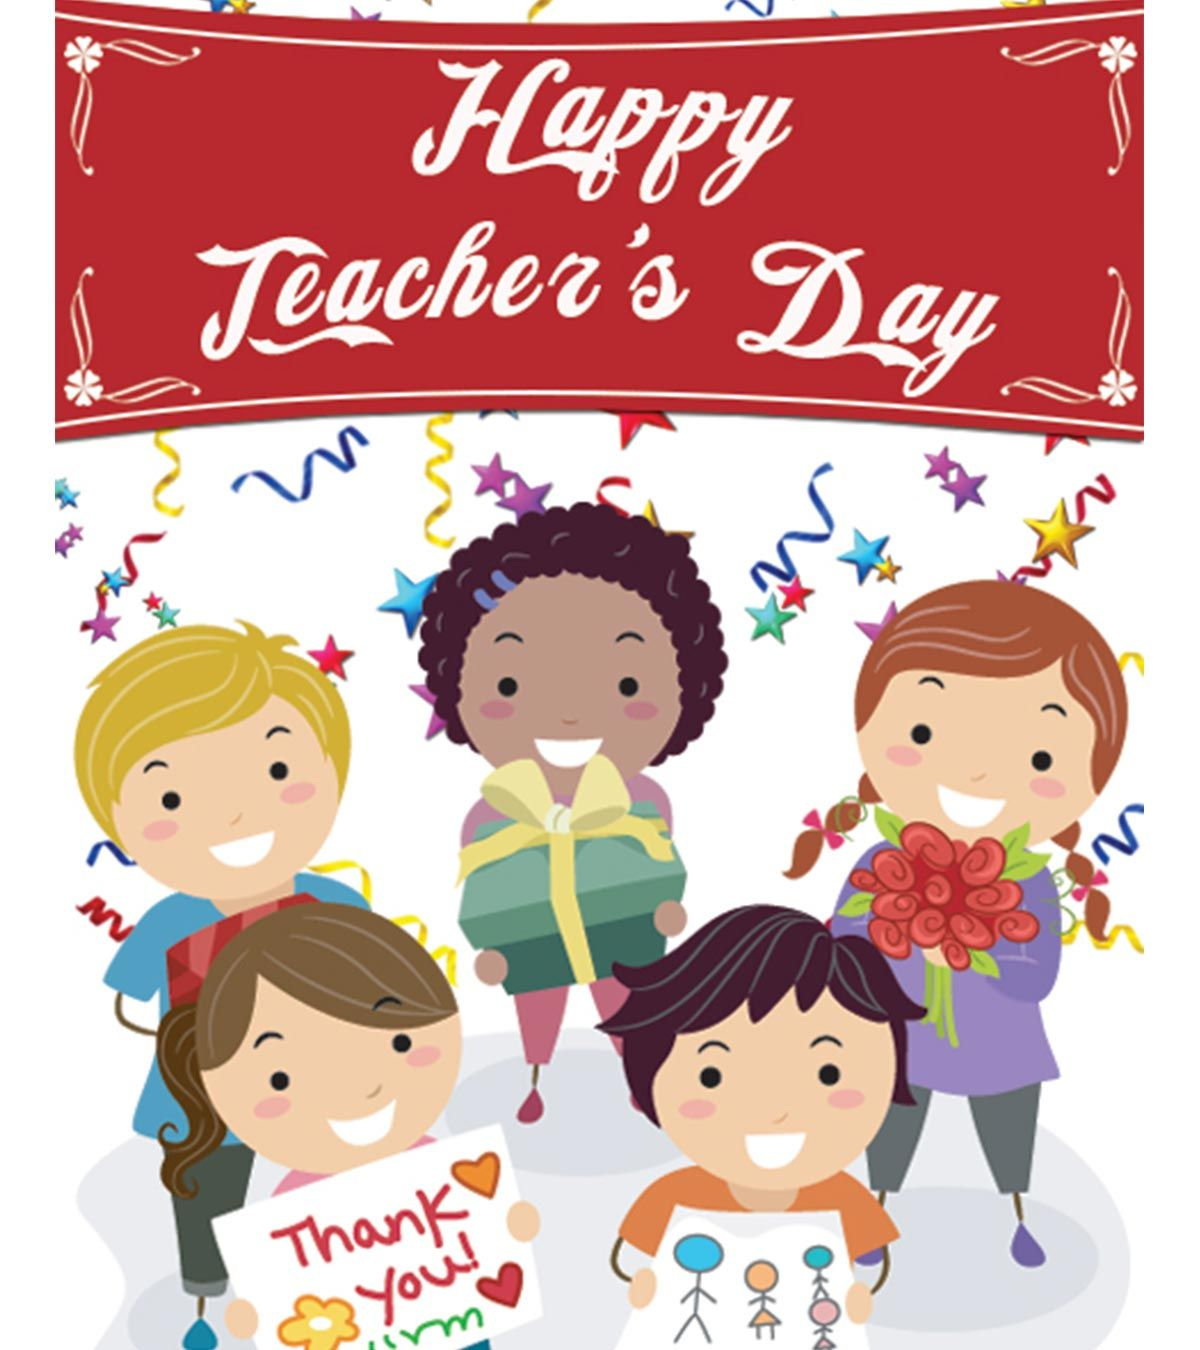 8 Fun Games And Activities To Celebrate Teacher S Day This Year Happy Teachers Day Card Teachers Day Card Teachers Day Greeting Card